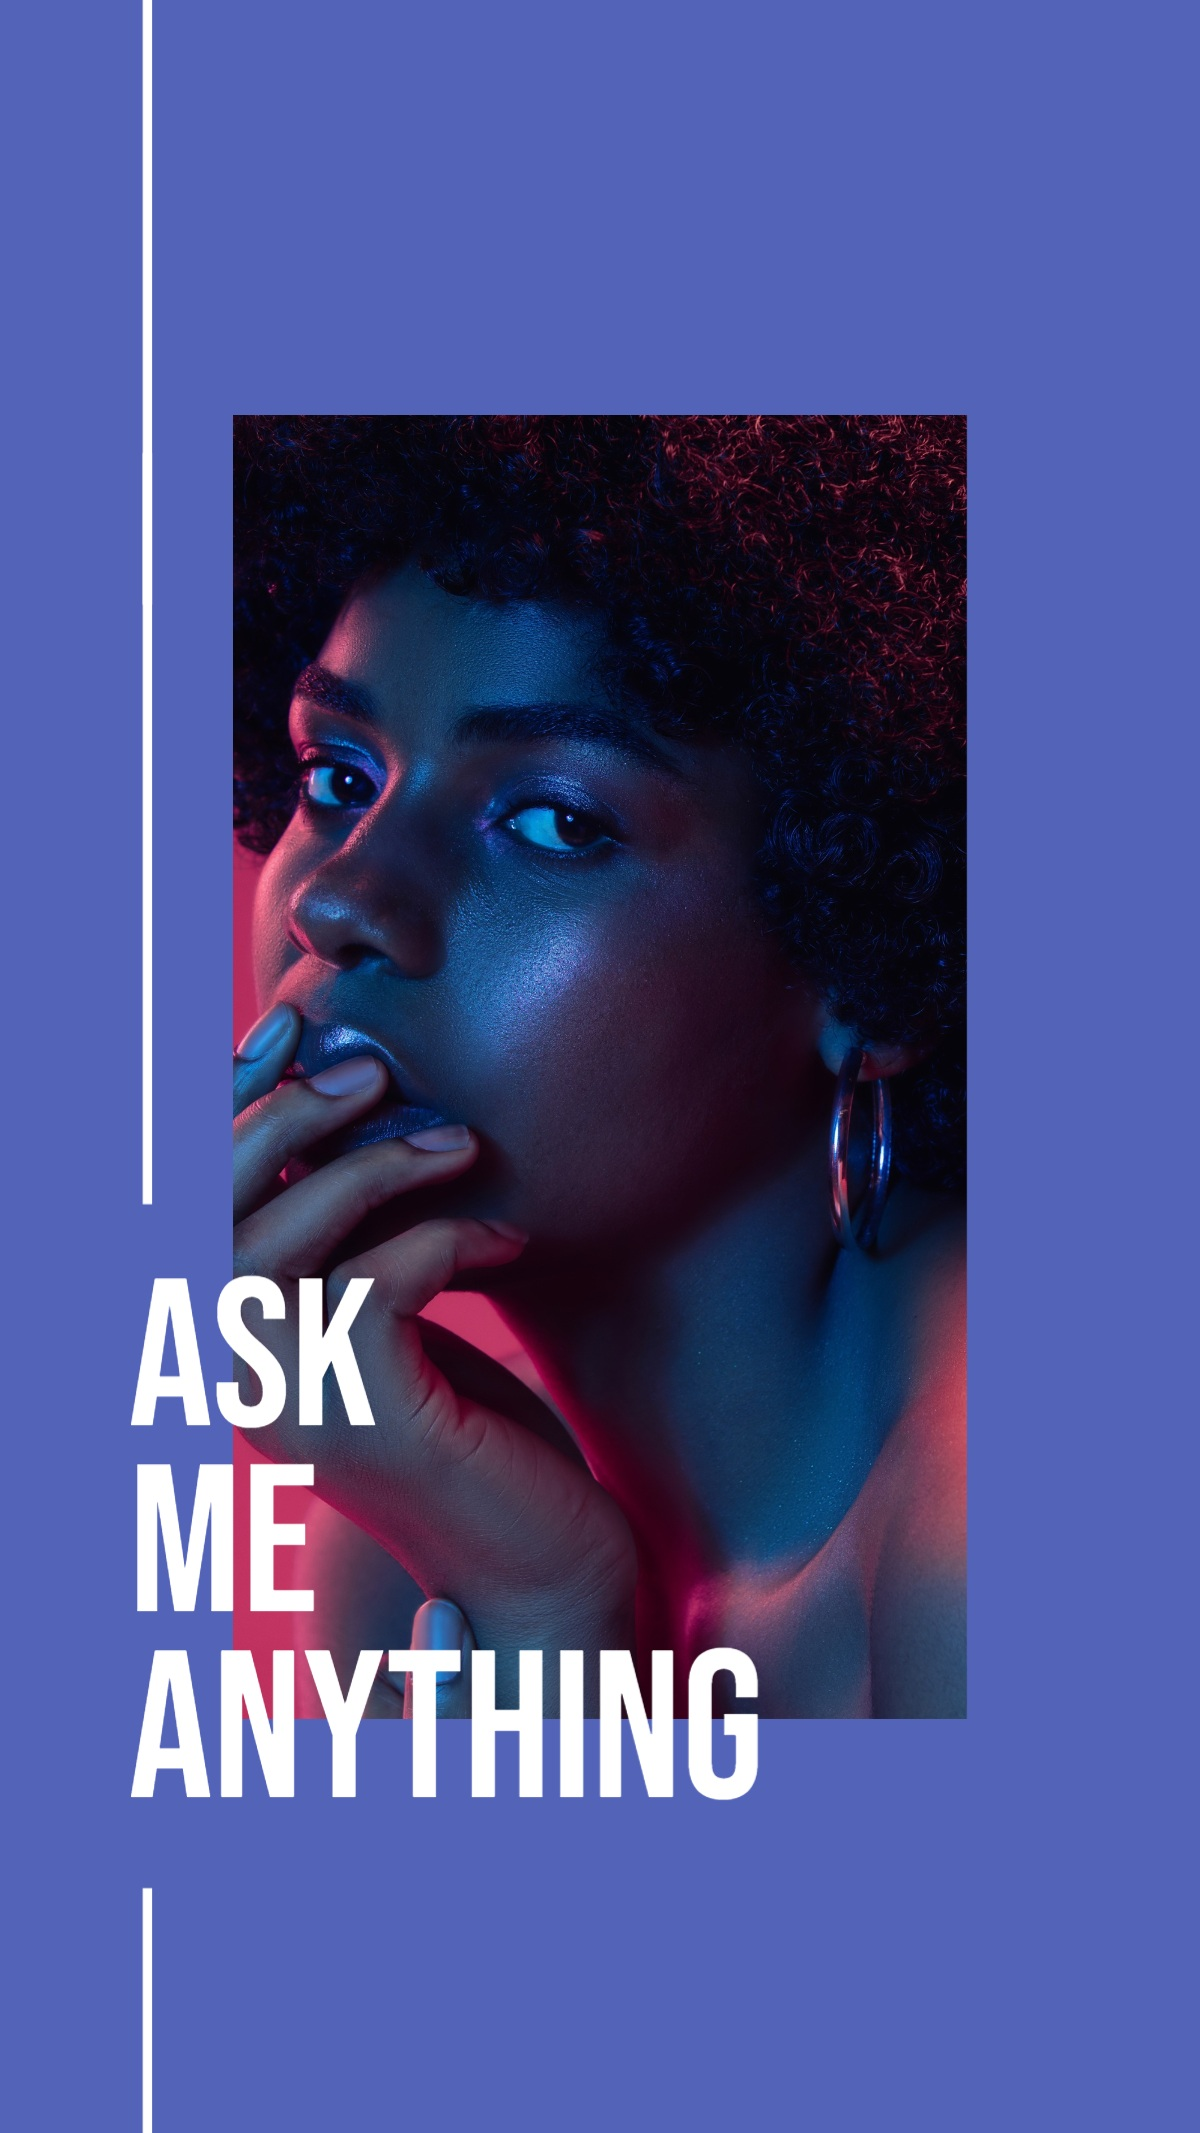 Purple White Ask Me Anything Profile Instagram Story Ask me anything